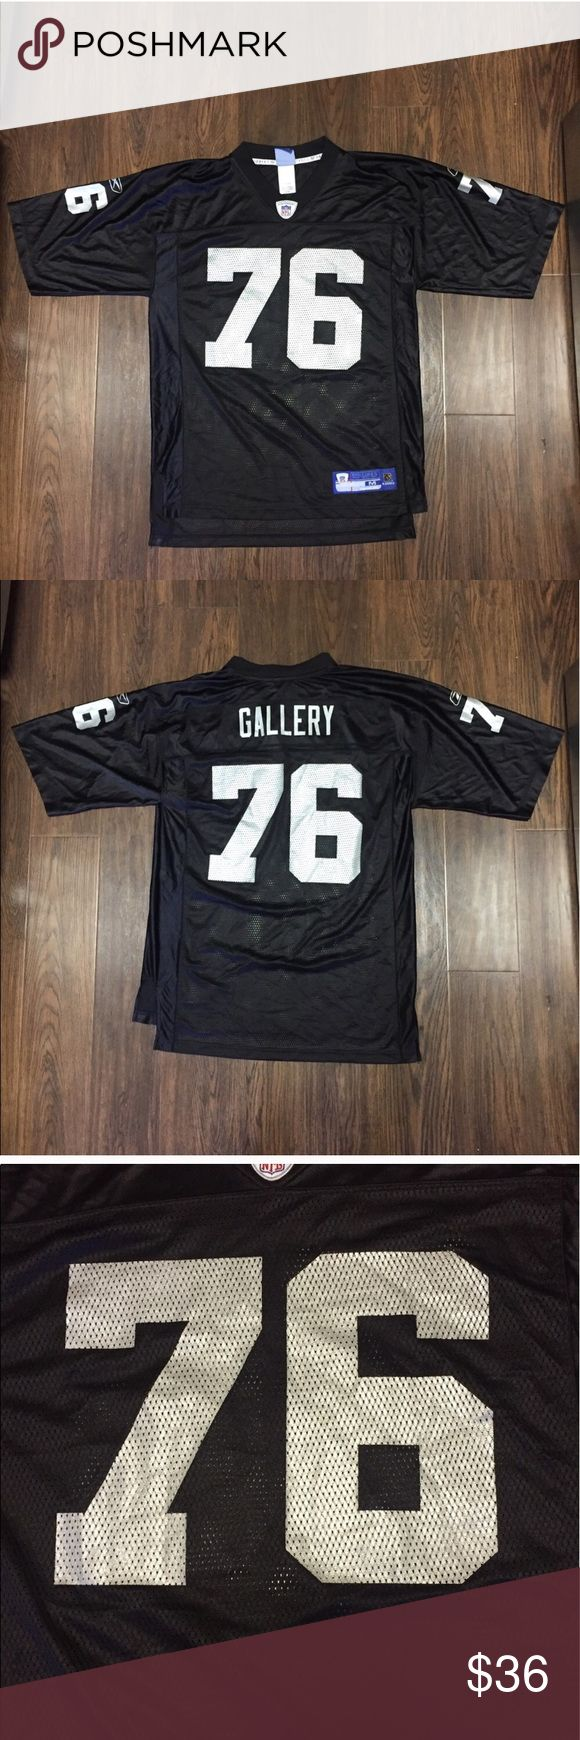 VTG Reebok Oakland Raiders Robert Gallery Jersey M Brand : Reebok  Color : Black/Silver  Size : Men's Medium   Letter and numbers screen printed on the jersey  100% AUTHENTIC  COMES FROM A SMOKE FREE HOME Reebok Other